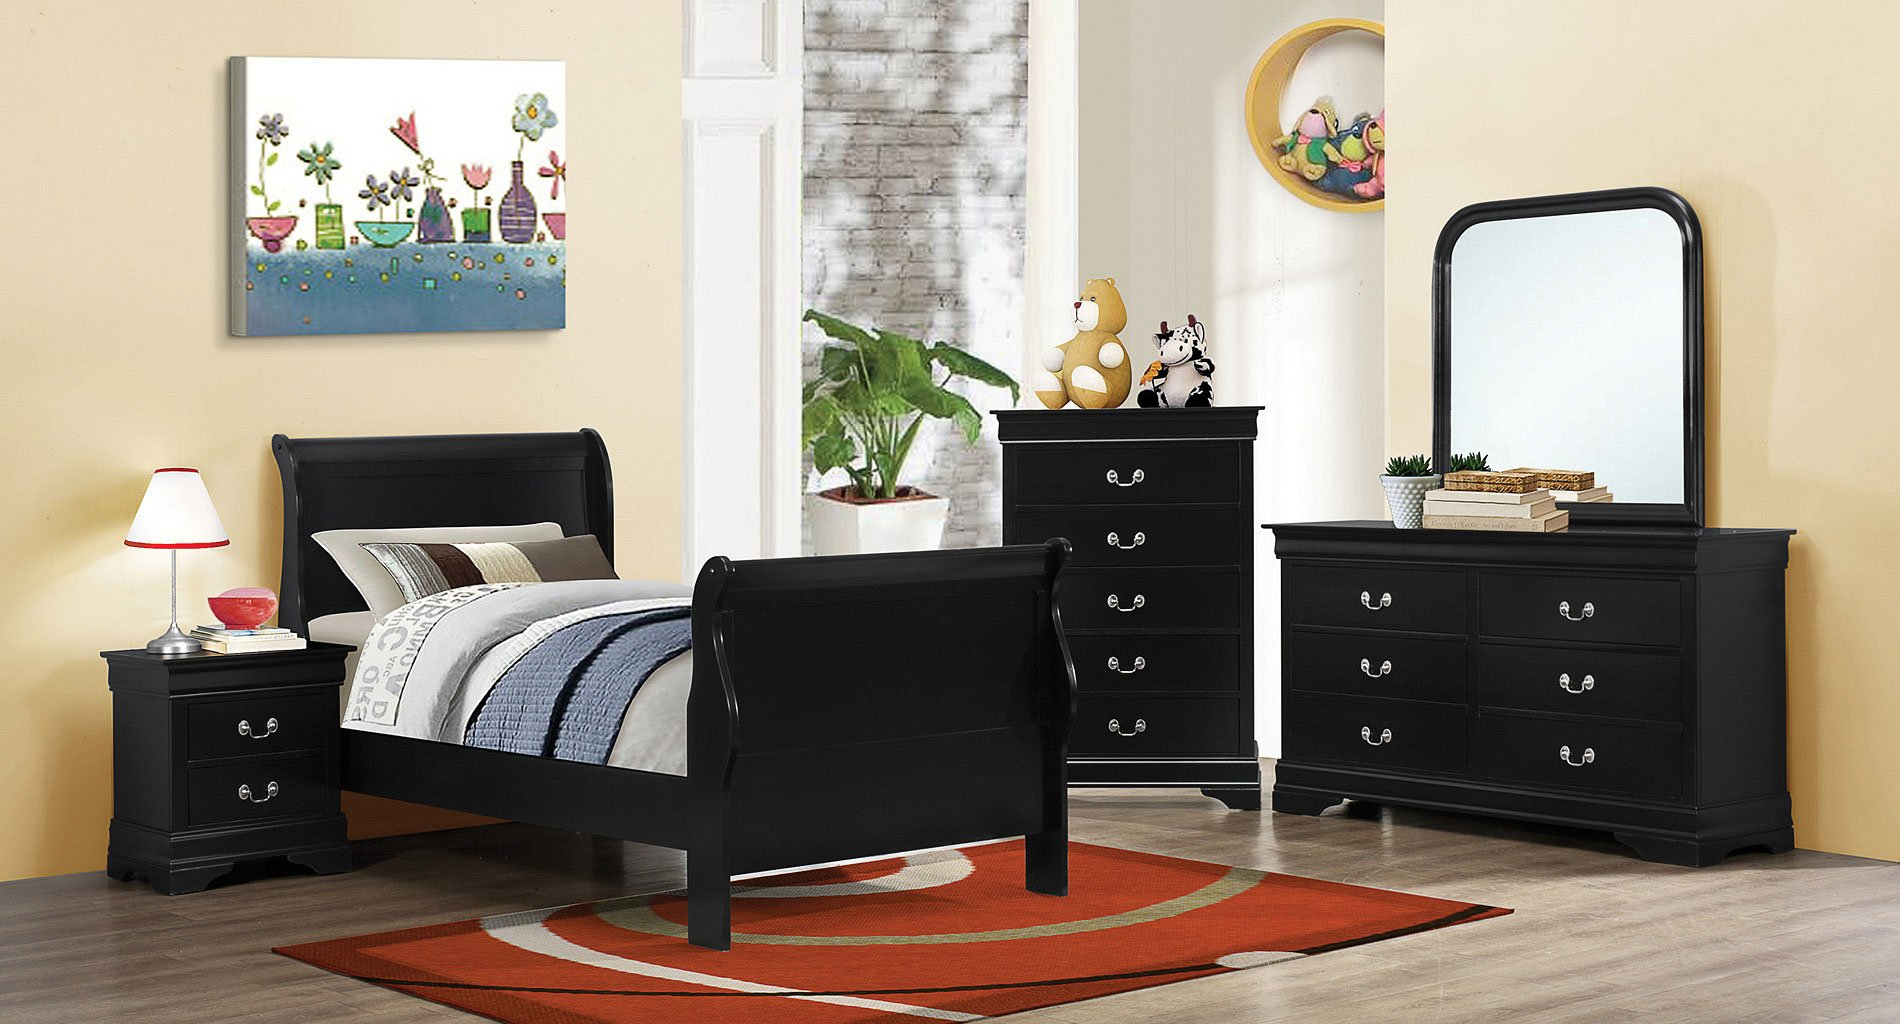 Louis philippe youth bedroom set black coaster furniture - Louis philippe bedroom collection ...